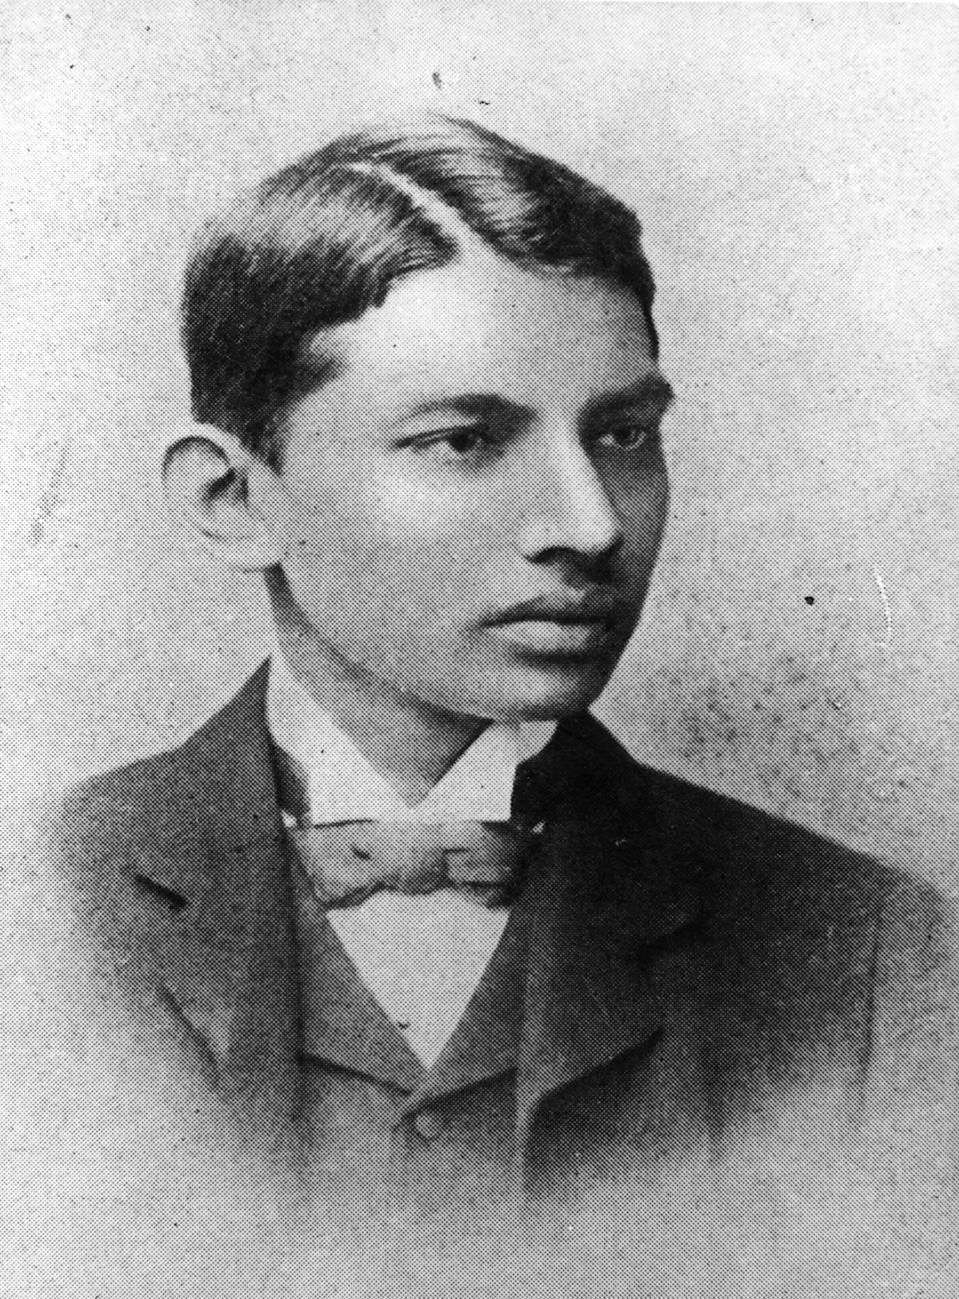 1887: Mahatma Gandhi (Mohandas Karamchand Gandhi, 1869-1948), as a law student. (Photo by Henry Guttmann Collection/Hulton Archive/Getty Images)